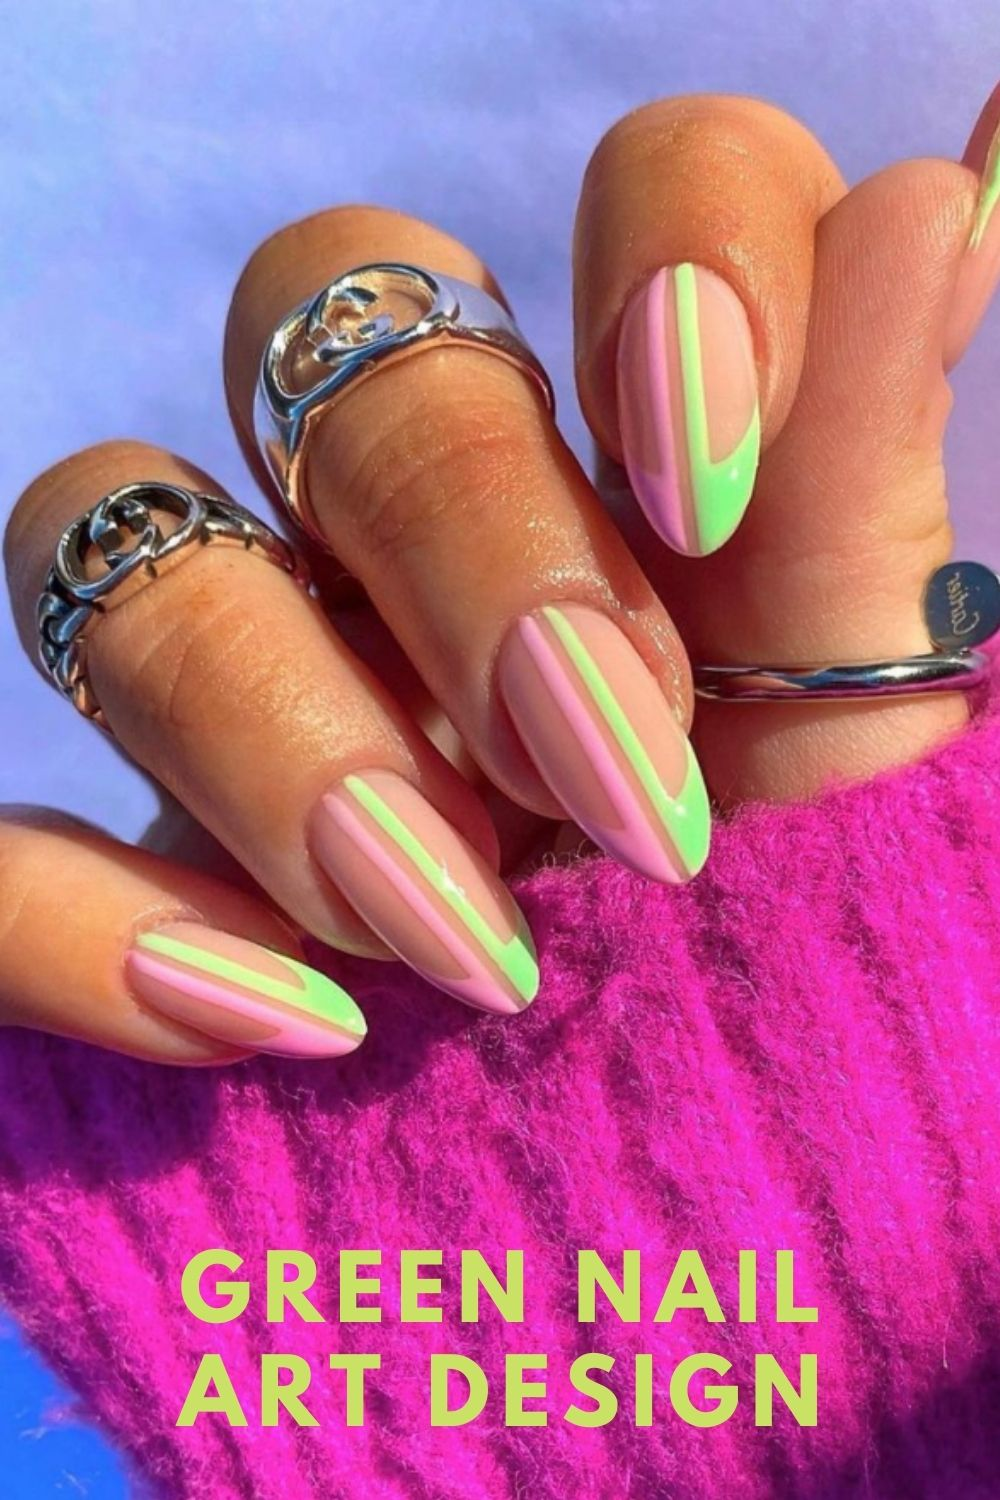 Pink and neon green almond nails art